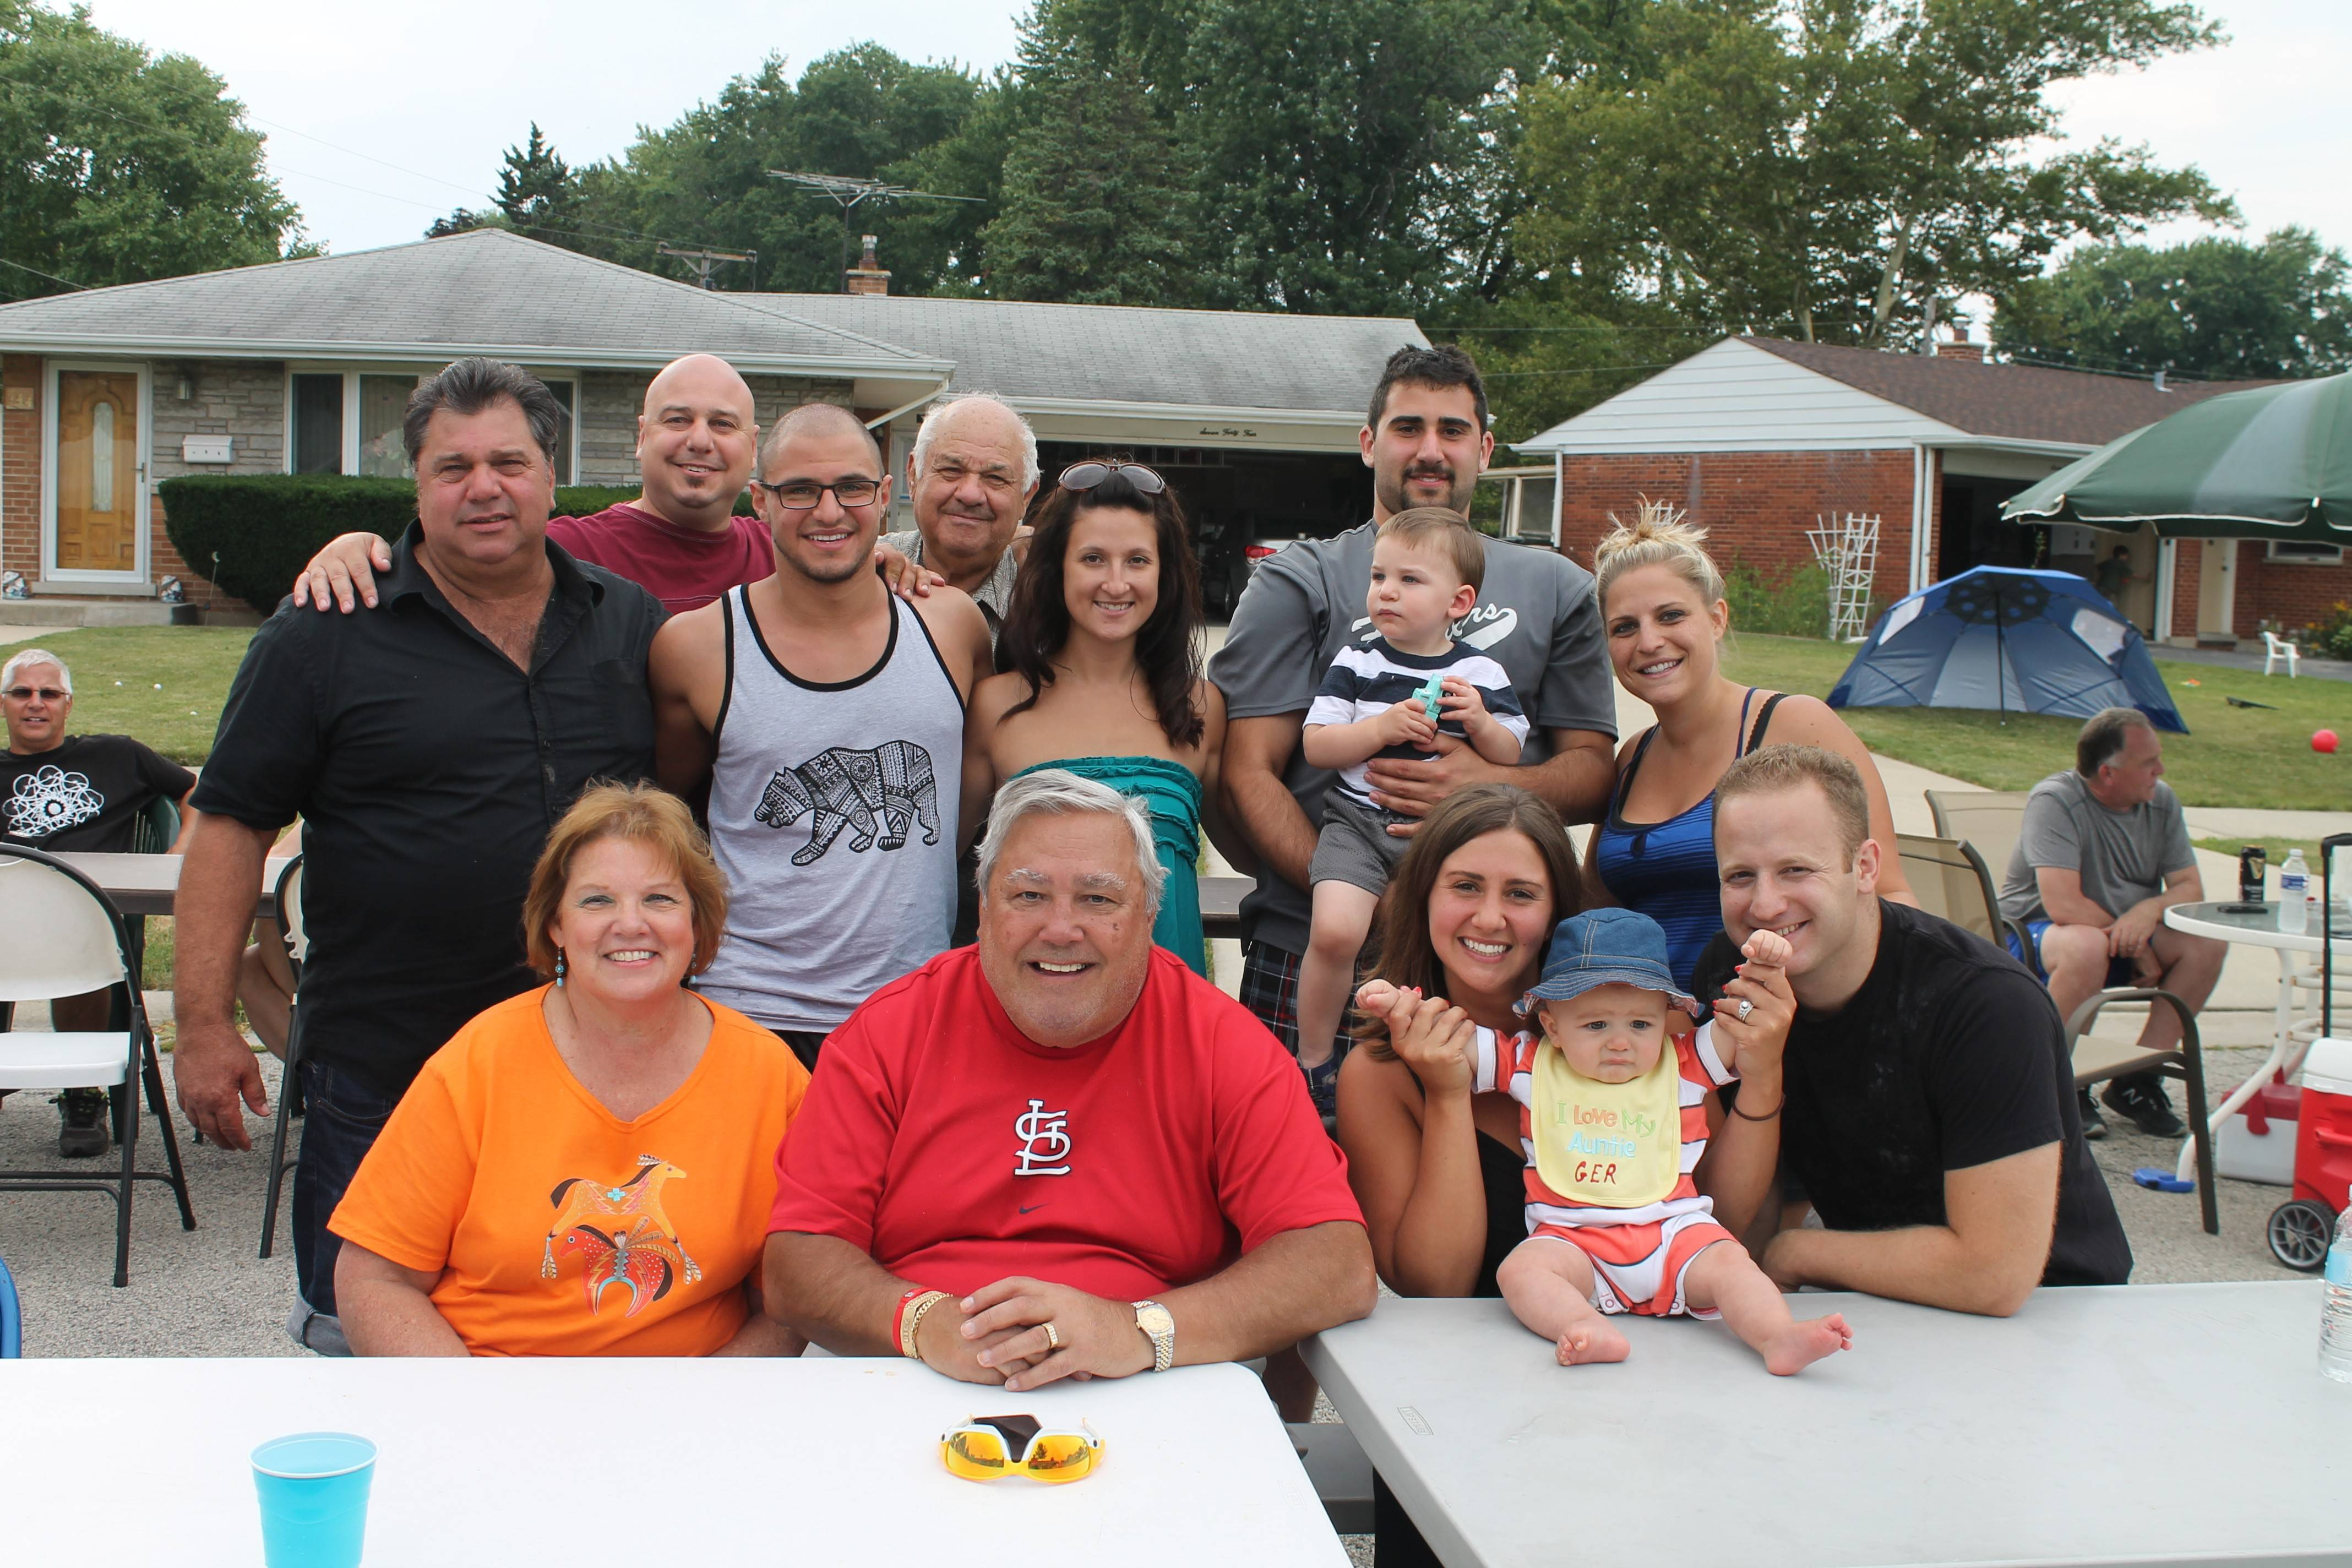 Fourth Ward Alderman Dick Sayad, front row, second from left, and his wife Patty, are pictured with just a few of the 150 participants of the 27th annual Shawn Lane Block Party in Des Plaines.